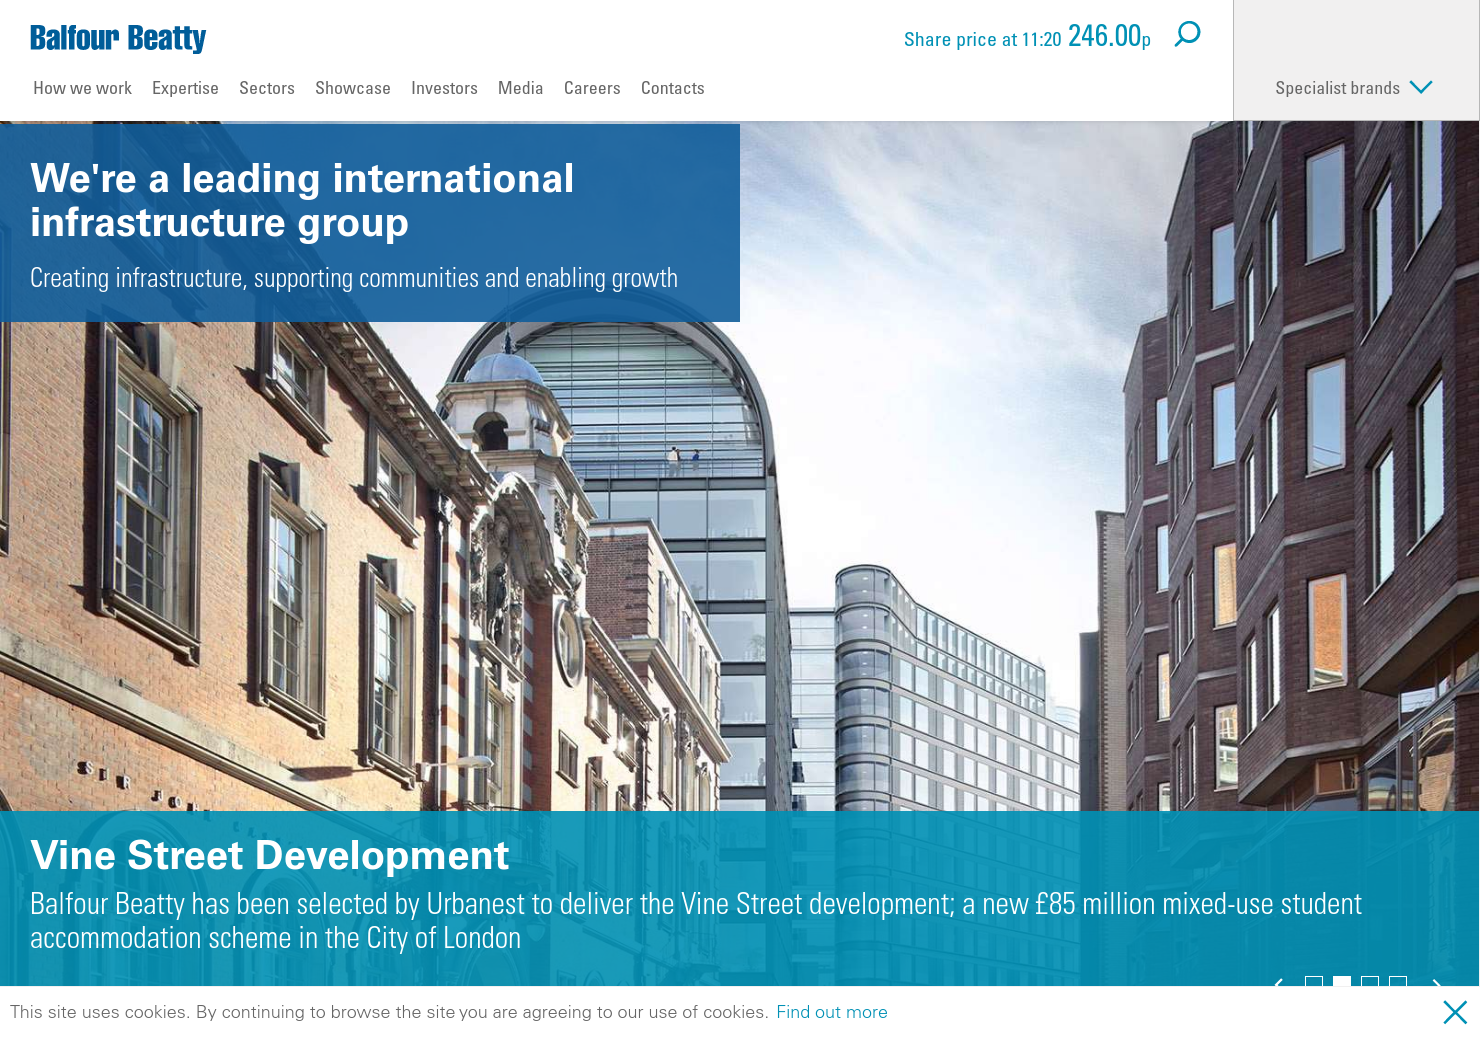 Balfour Beatty Home Page